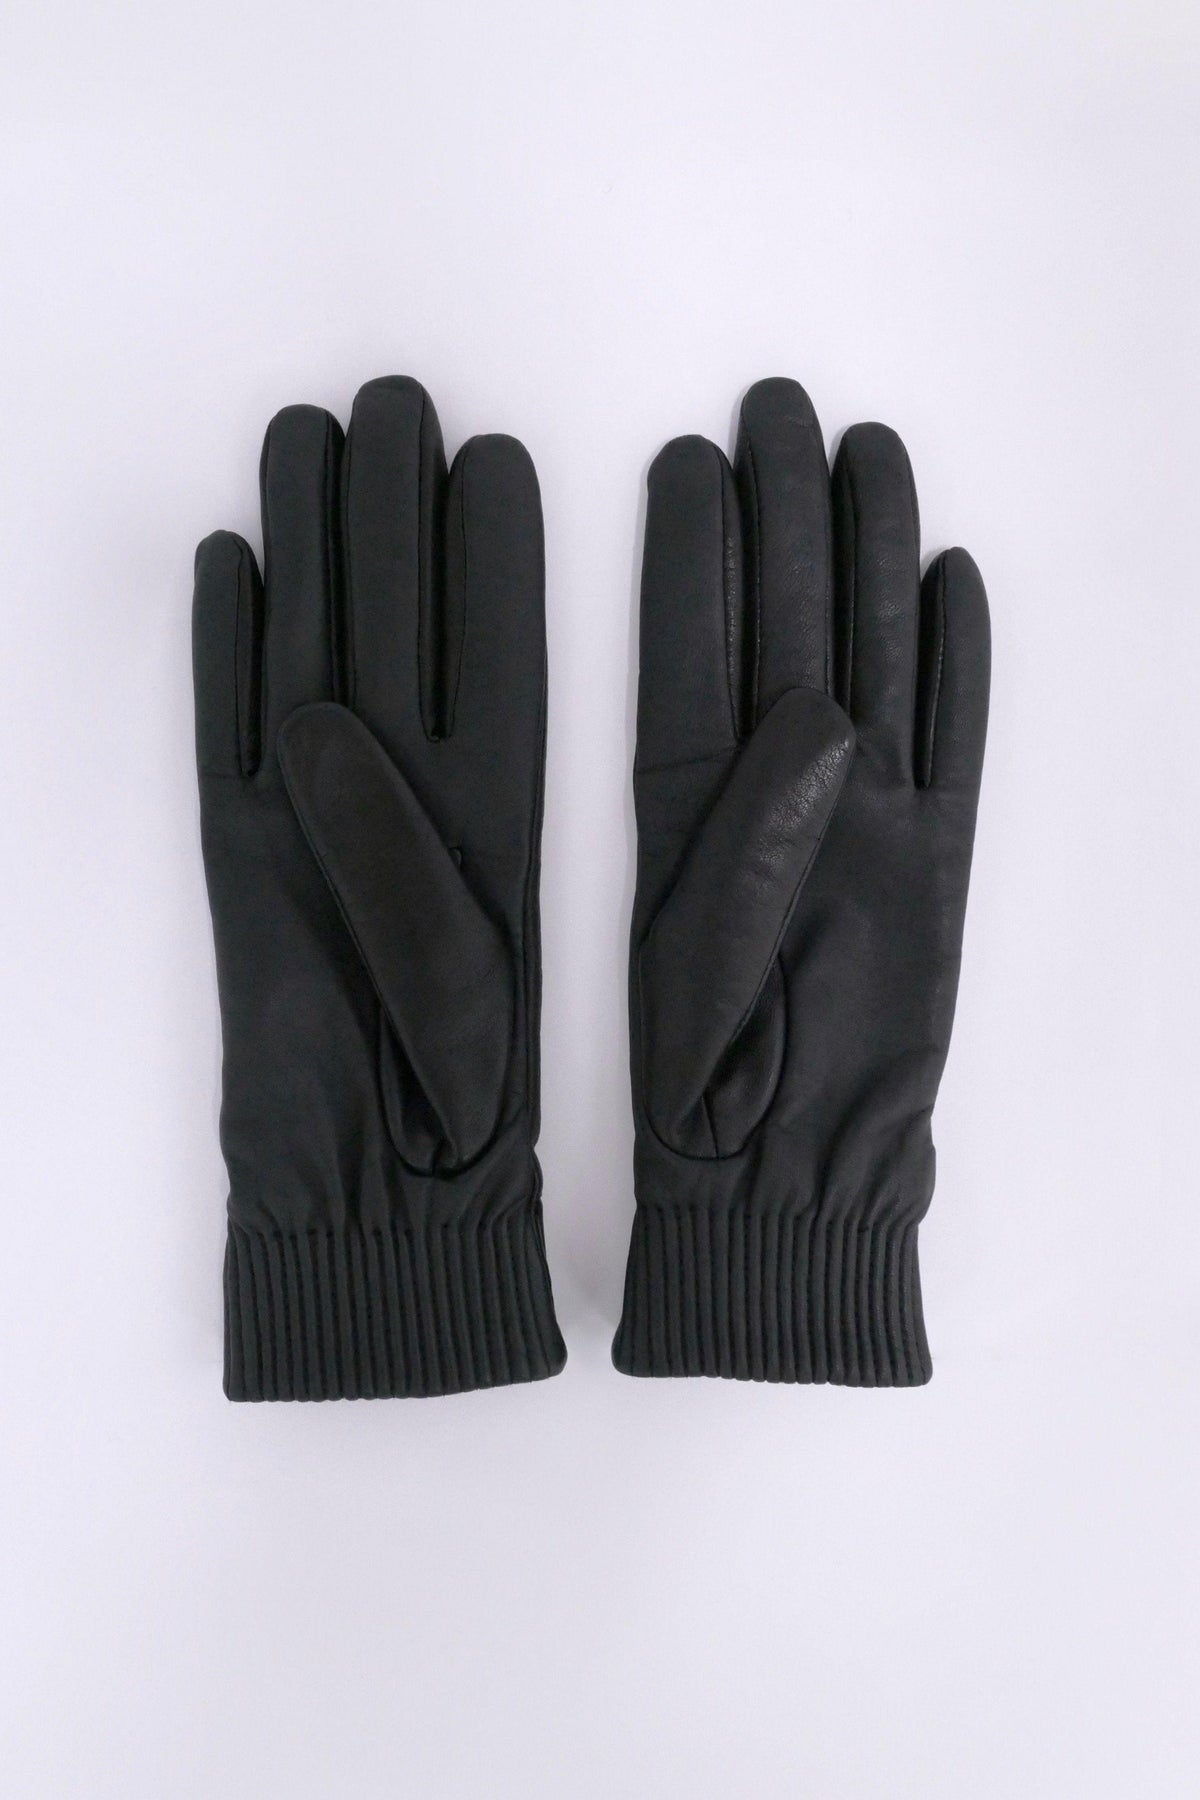 Canada Goose Womens Winter Accessories Gloves and Mitts Leather Rib Glove Black